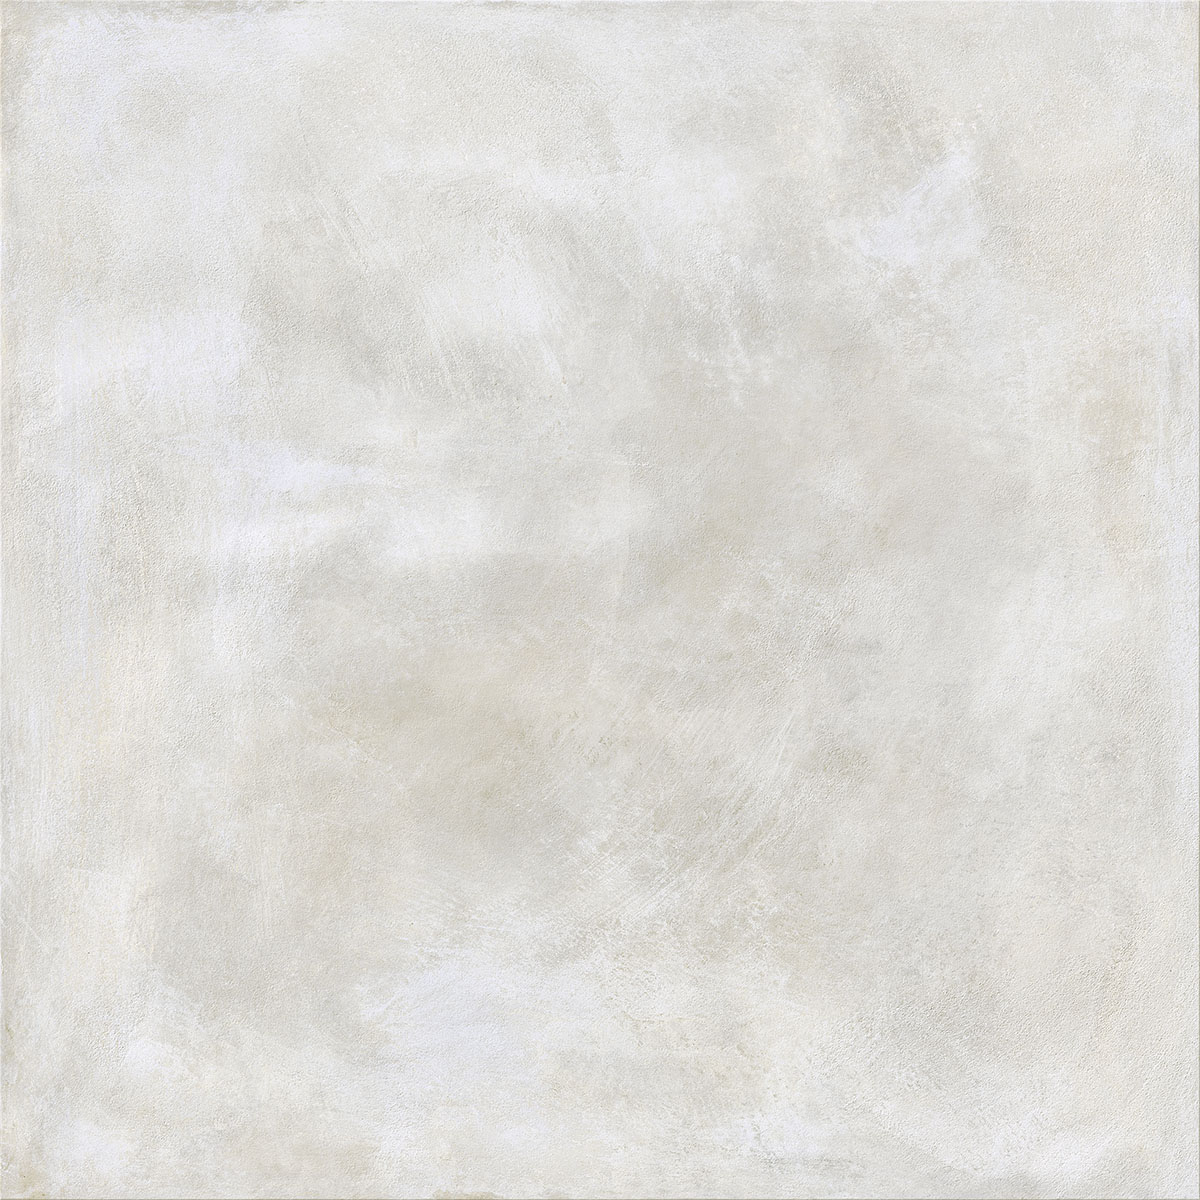 Antique white 61,5 x 61,5